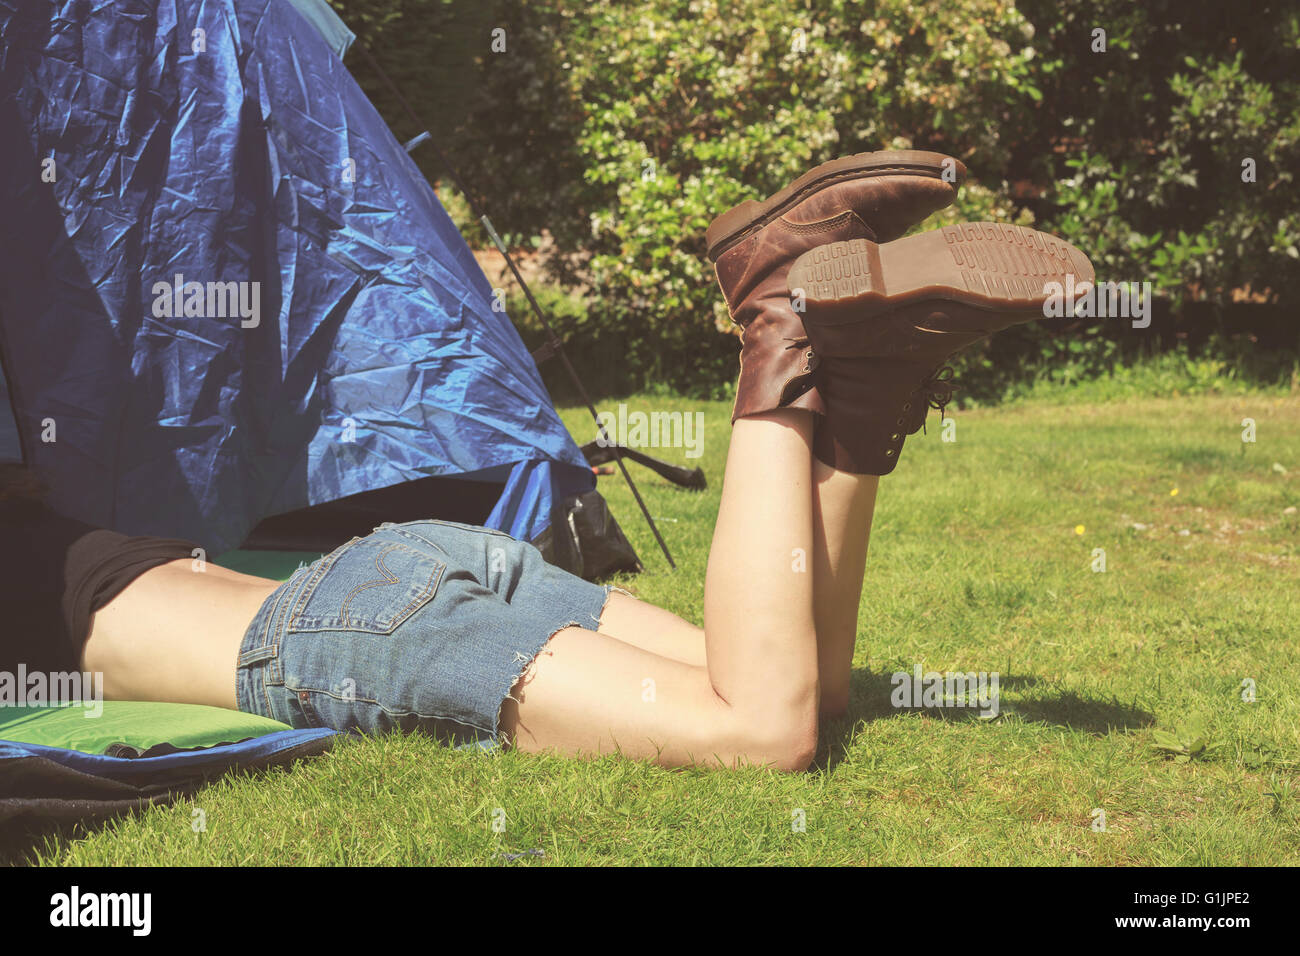 A young woman is lying in a tent with her legs sticking out - Stock Image